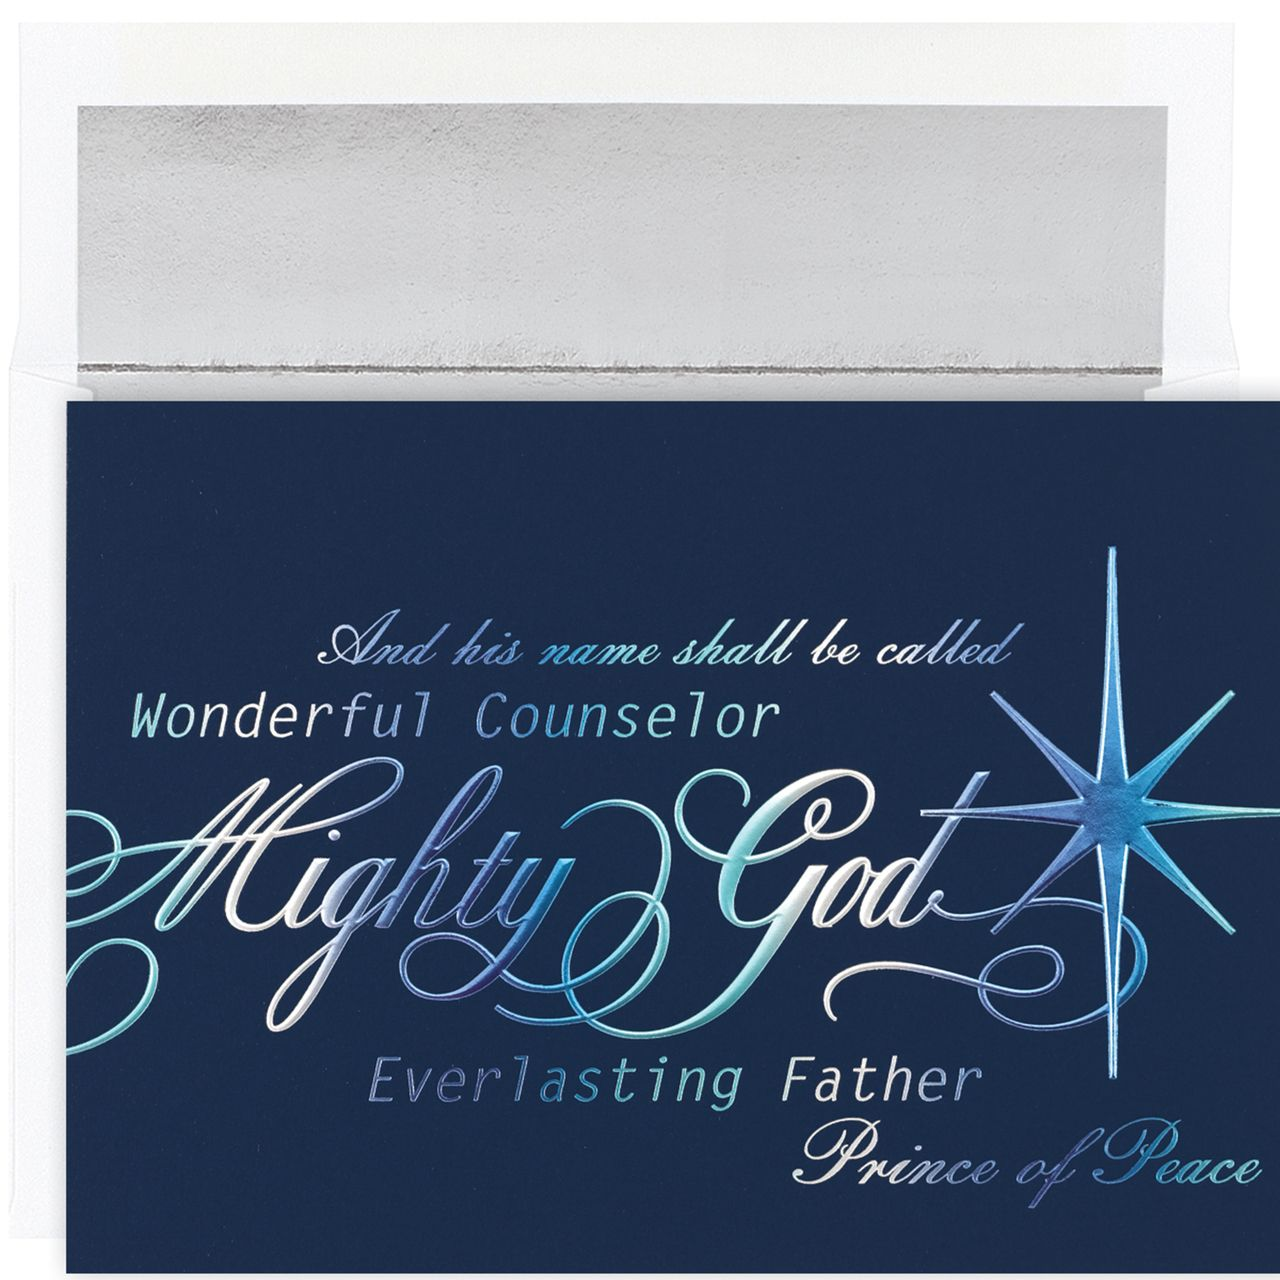 Prince of peace religious christmas card religious christmas cards mycards4less prince of peace religious christmas card 1760 httpwww kristyandbryce Gallery